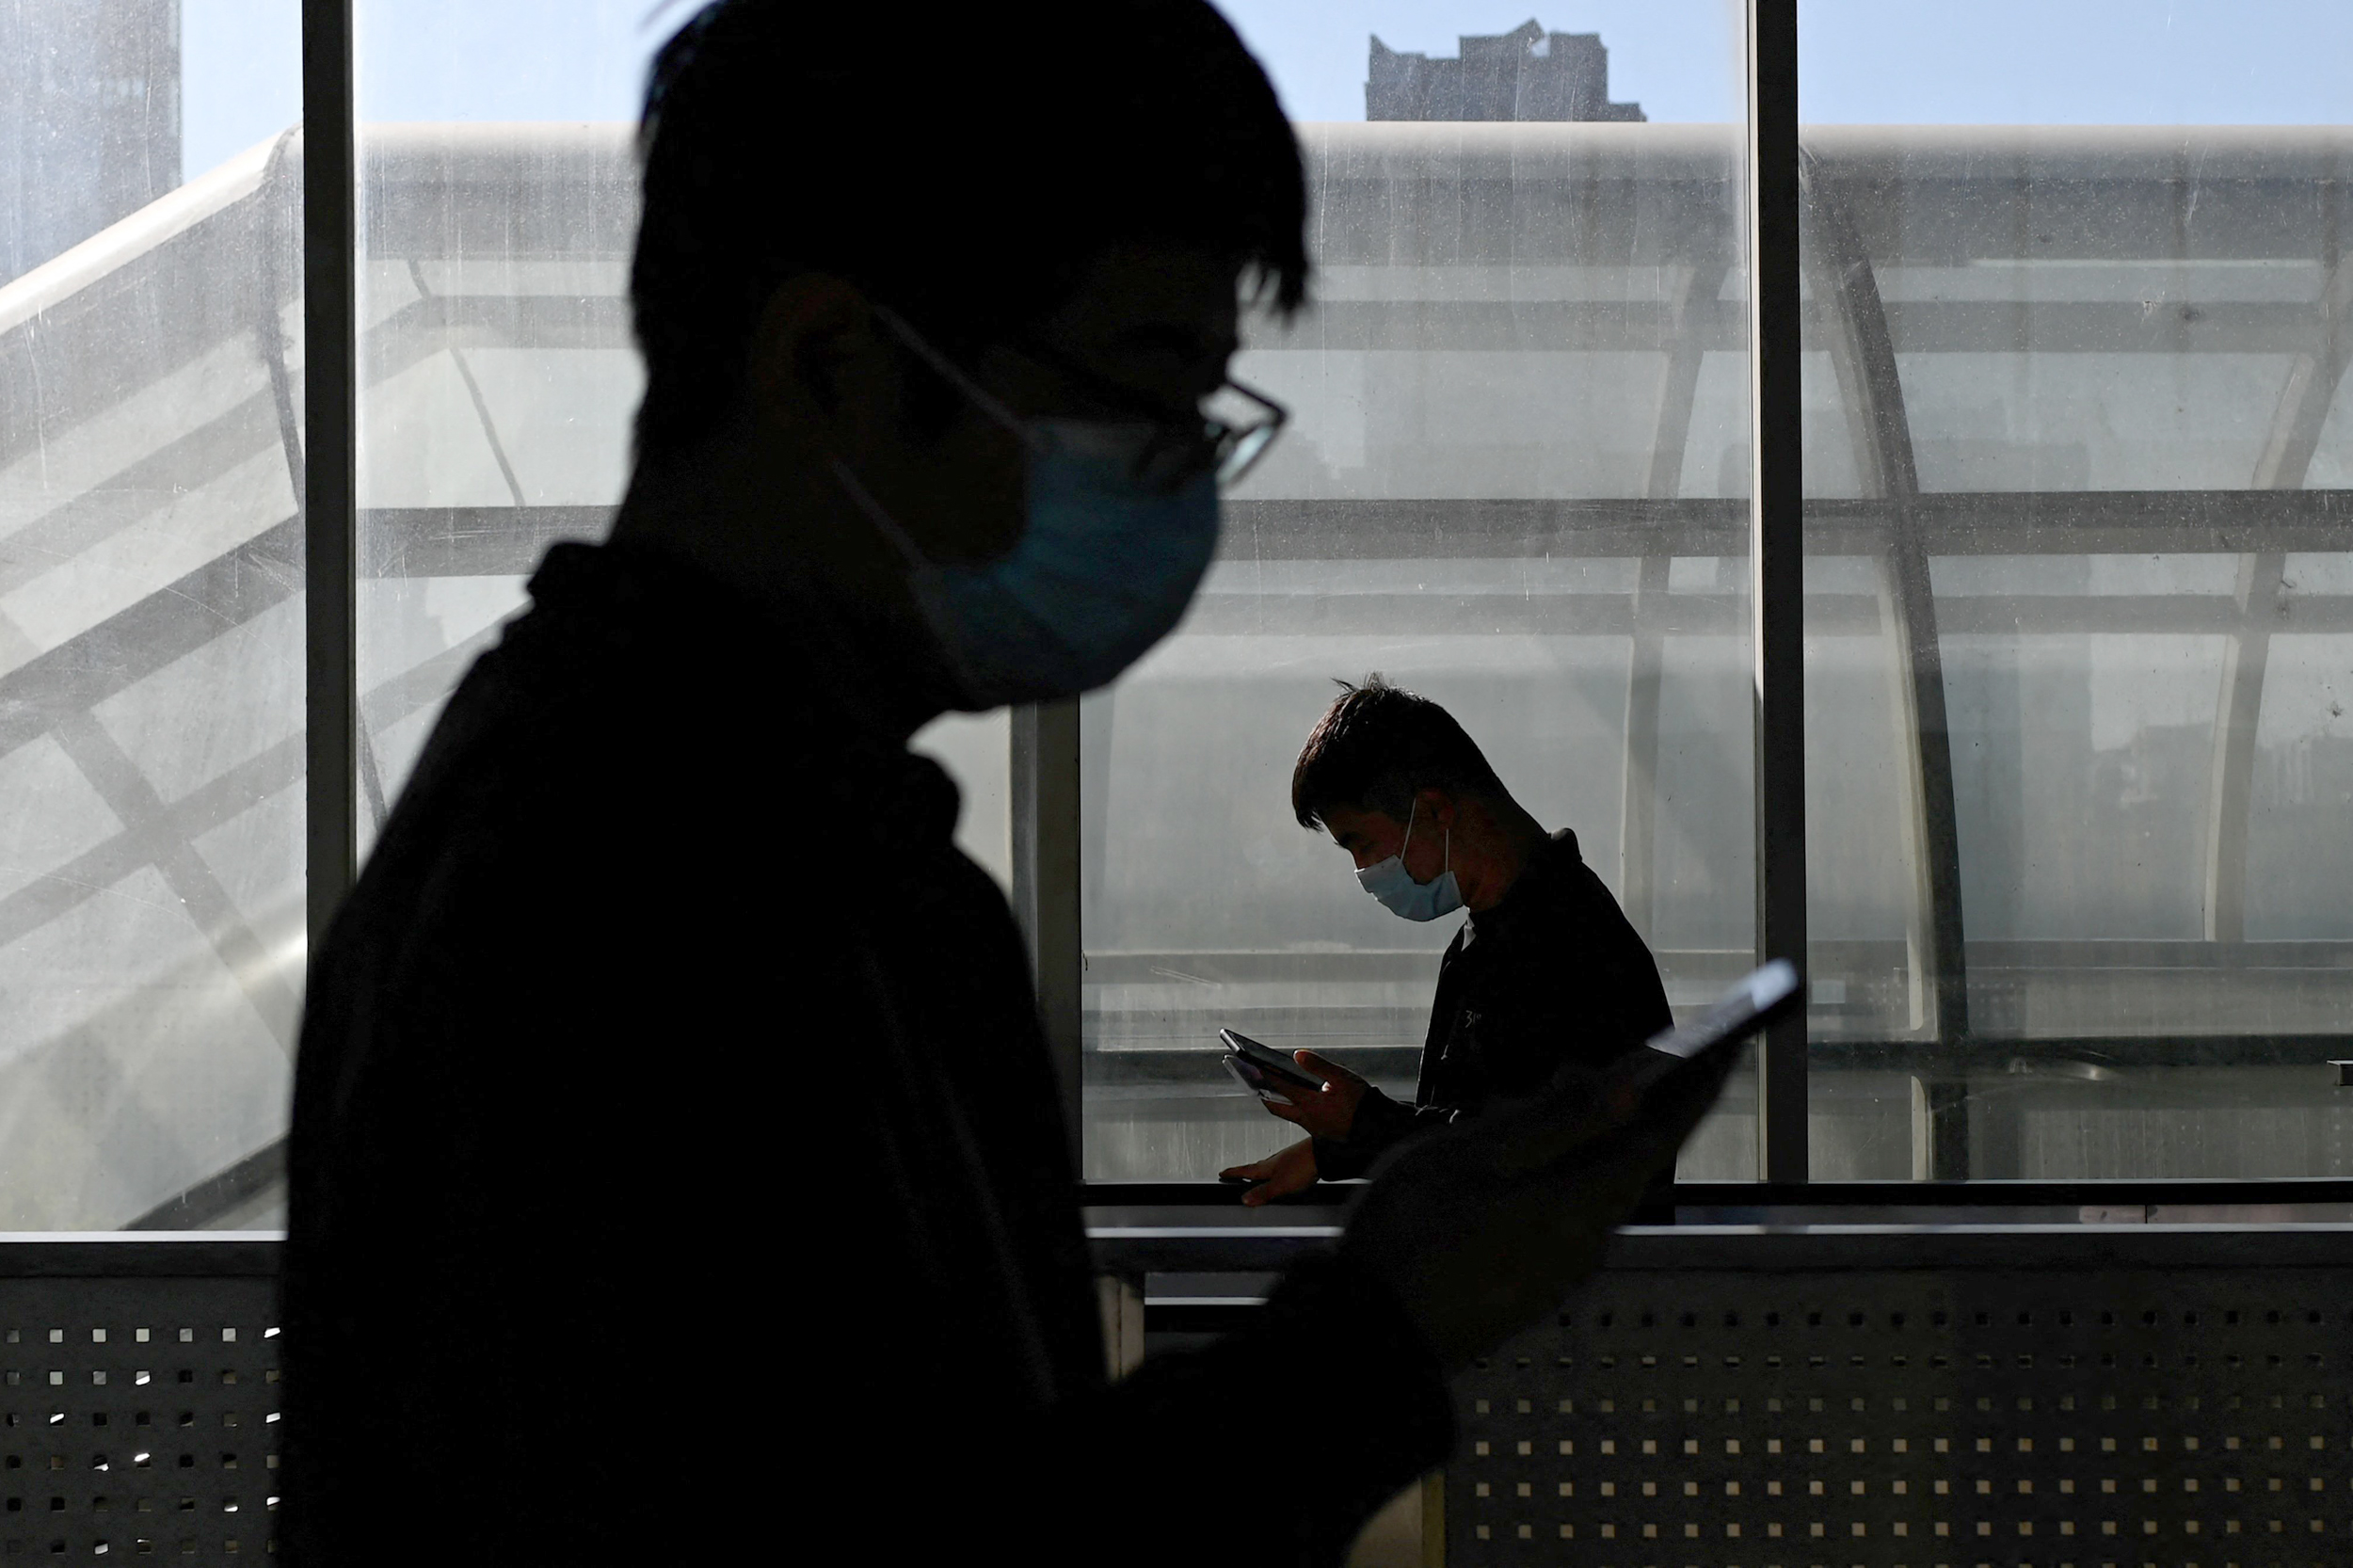 Chinese regulators to exercise more control over algorithms